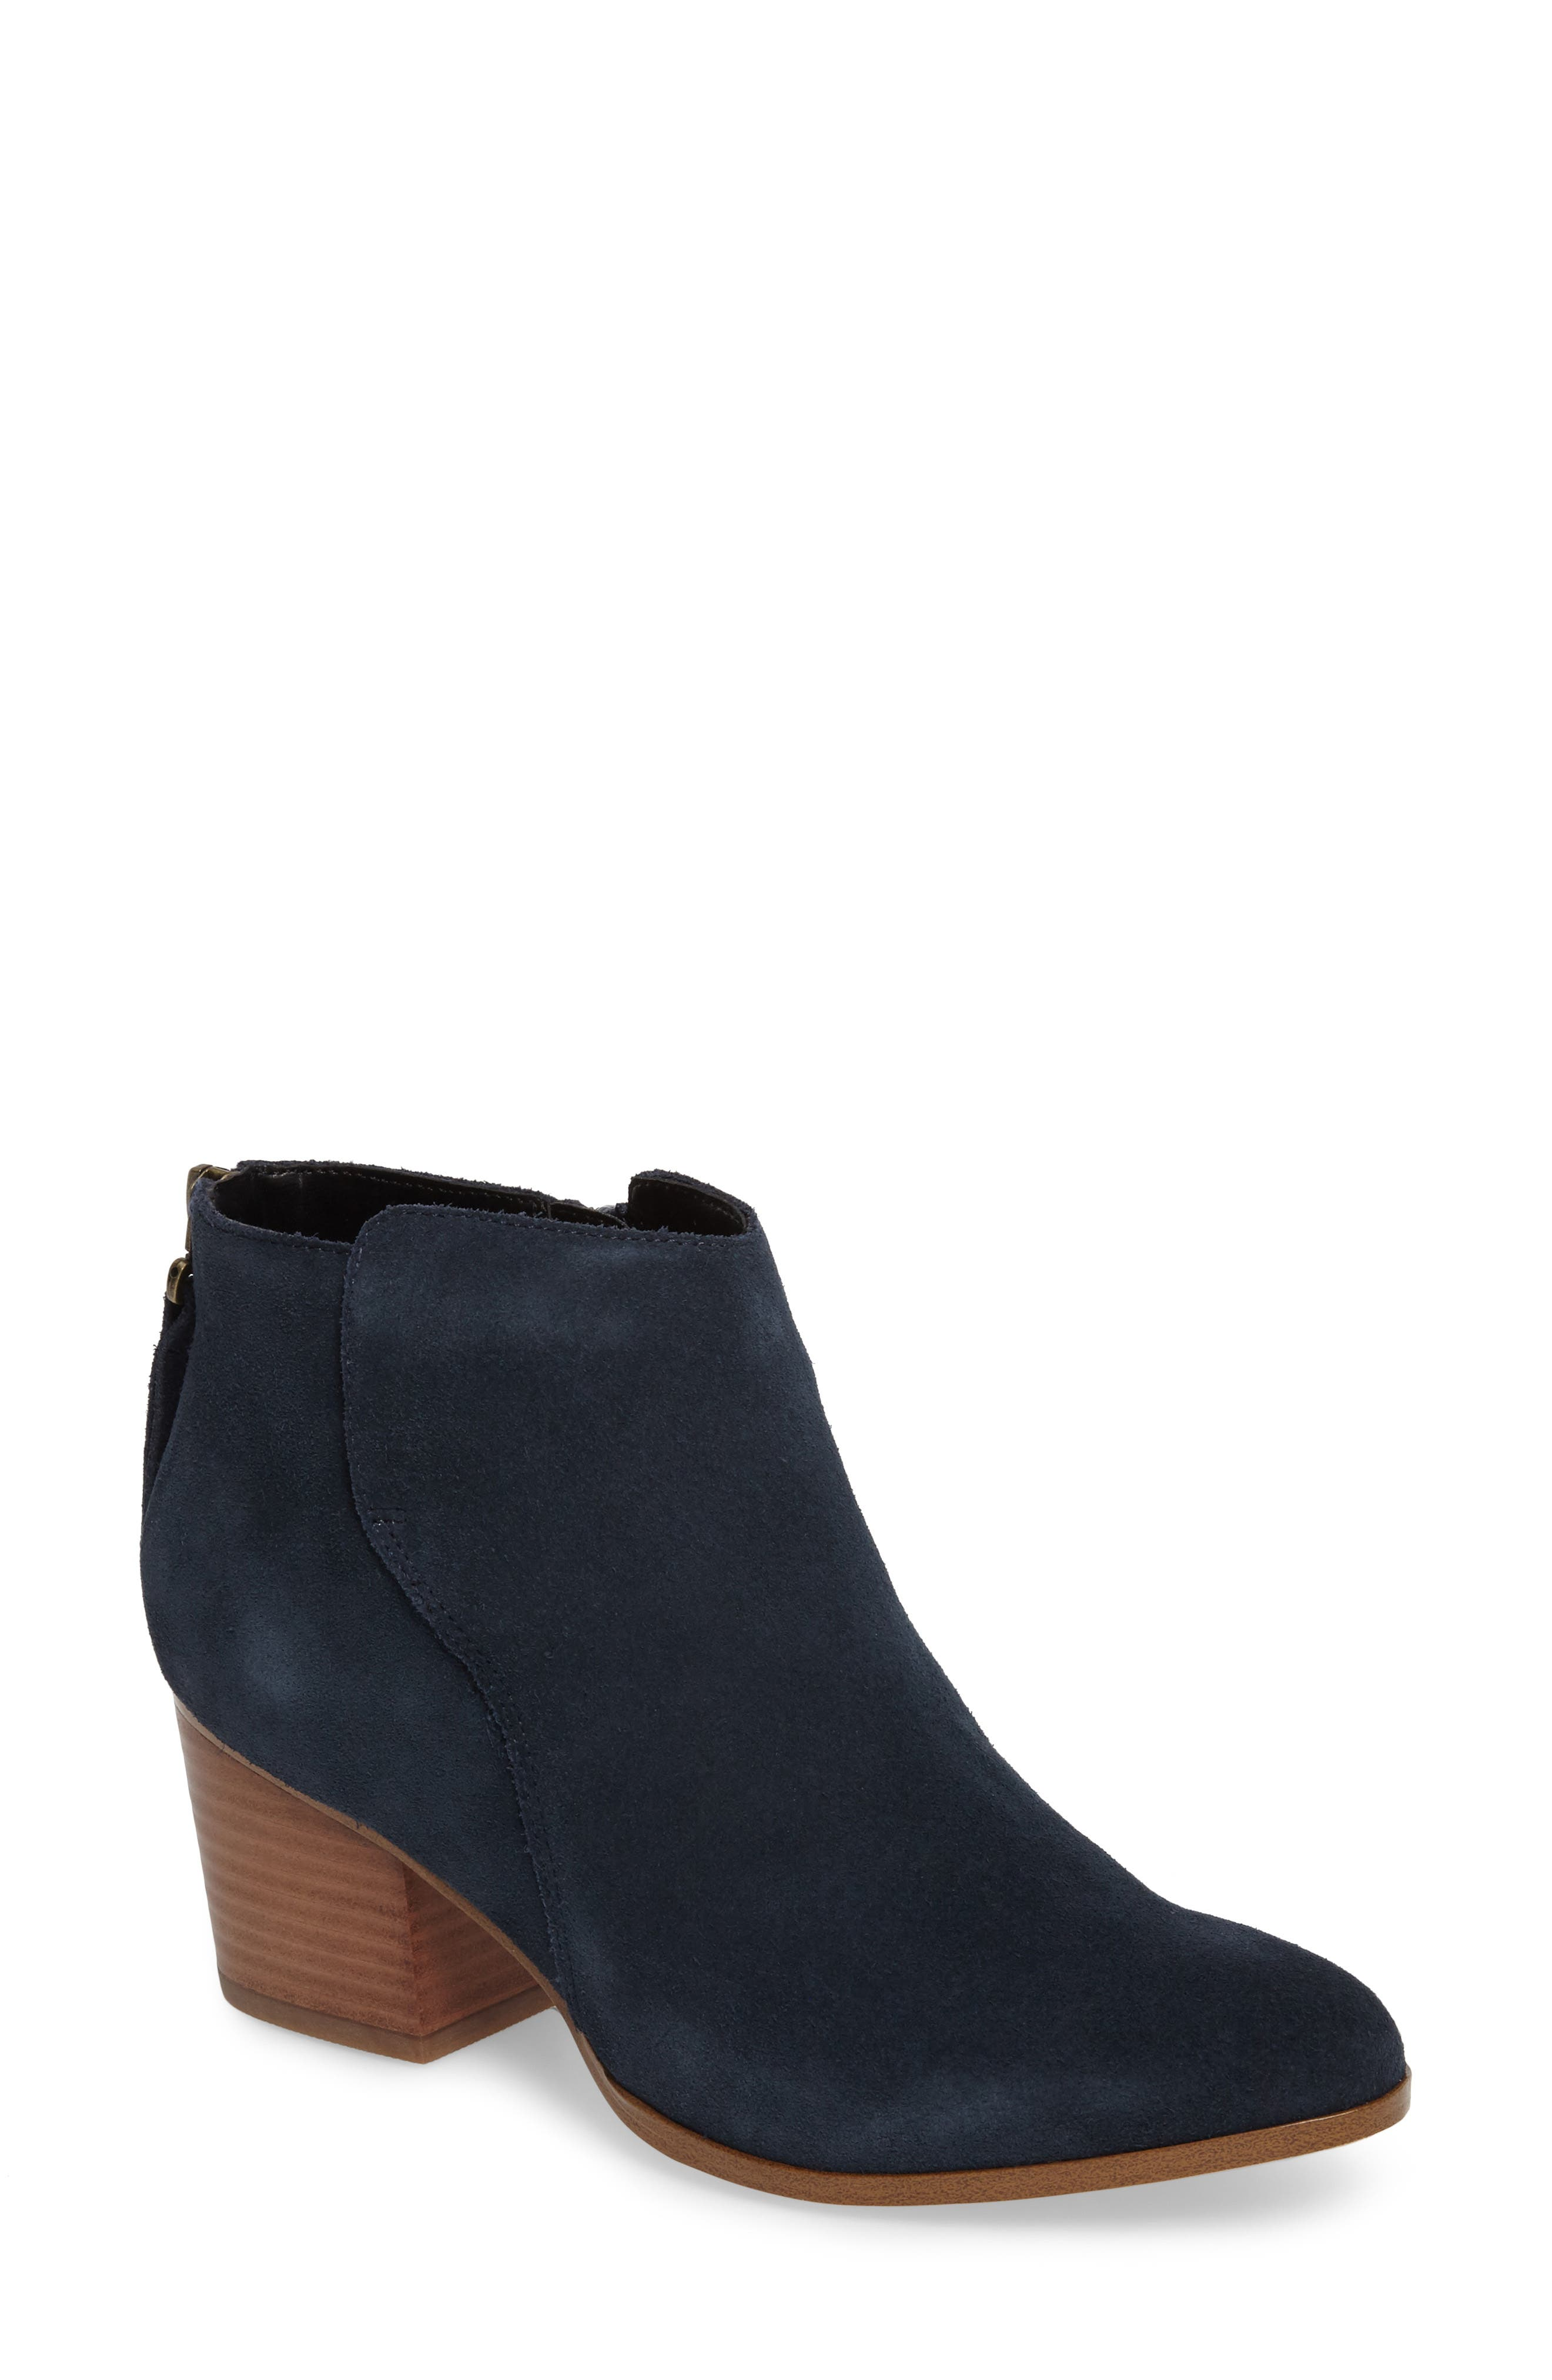 Main Image - Sole Society River Bootie (Women)